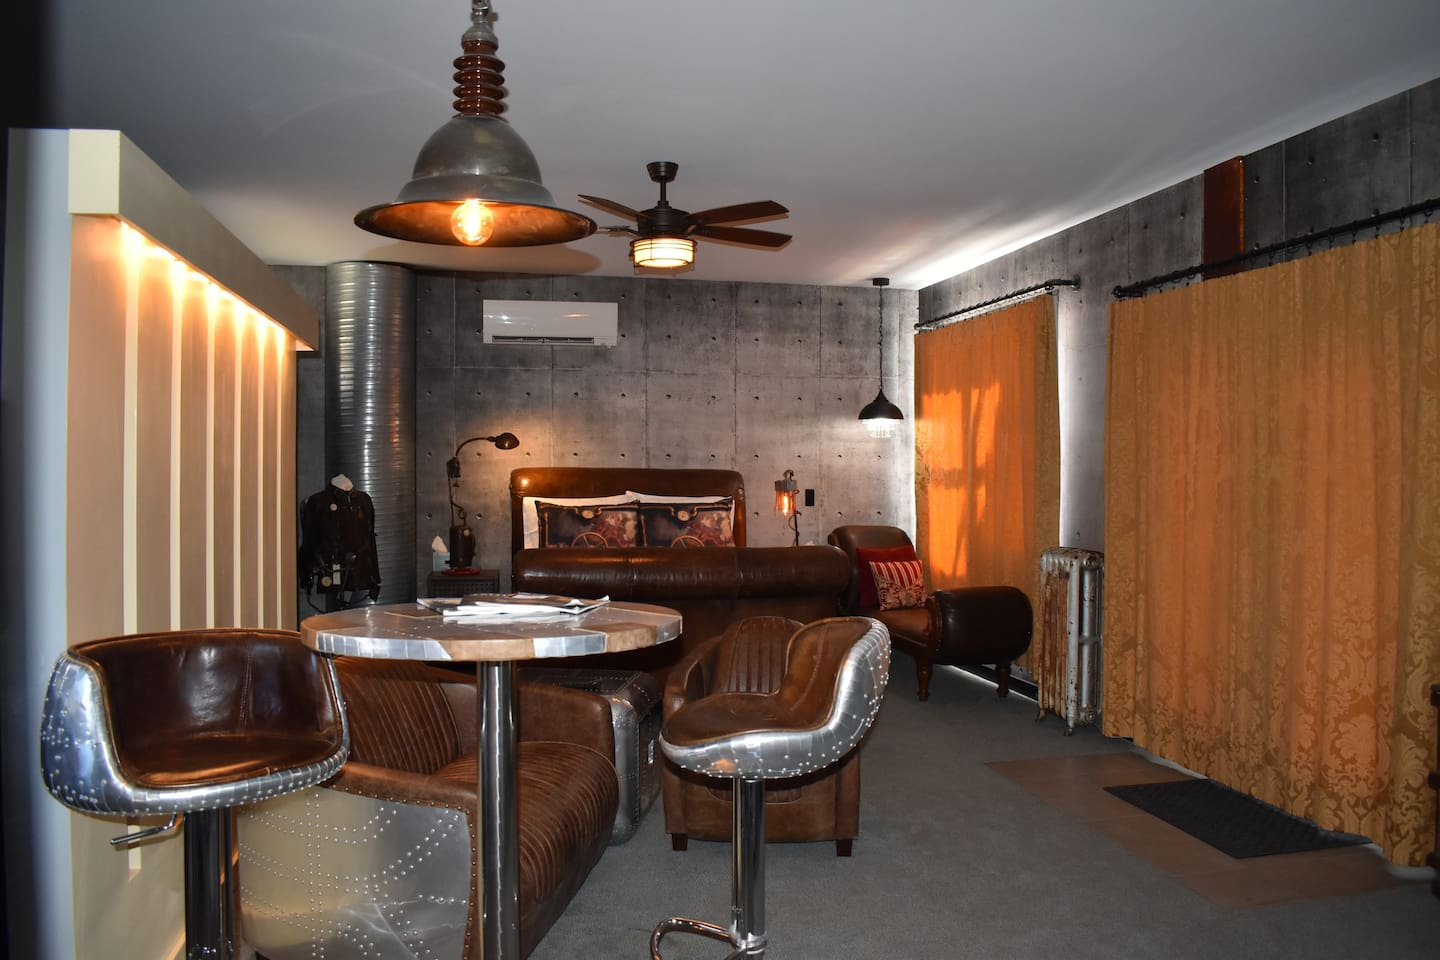 Metal & Leather Steampunk Suite with Riveted Steel Table & Bar Stools, Leather Sofa, Chair, Bed & 1890's Chaise Longue